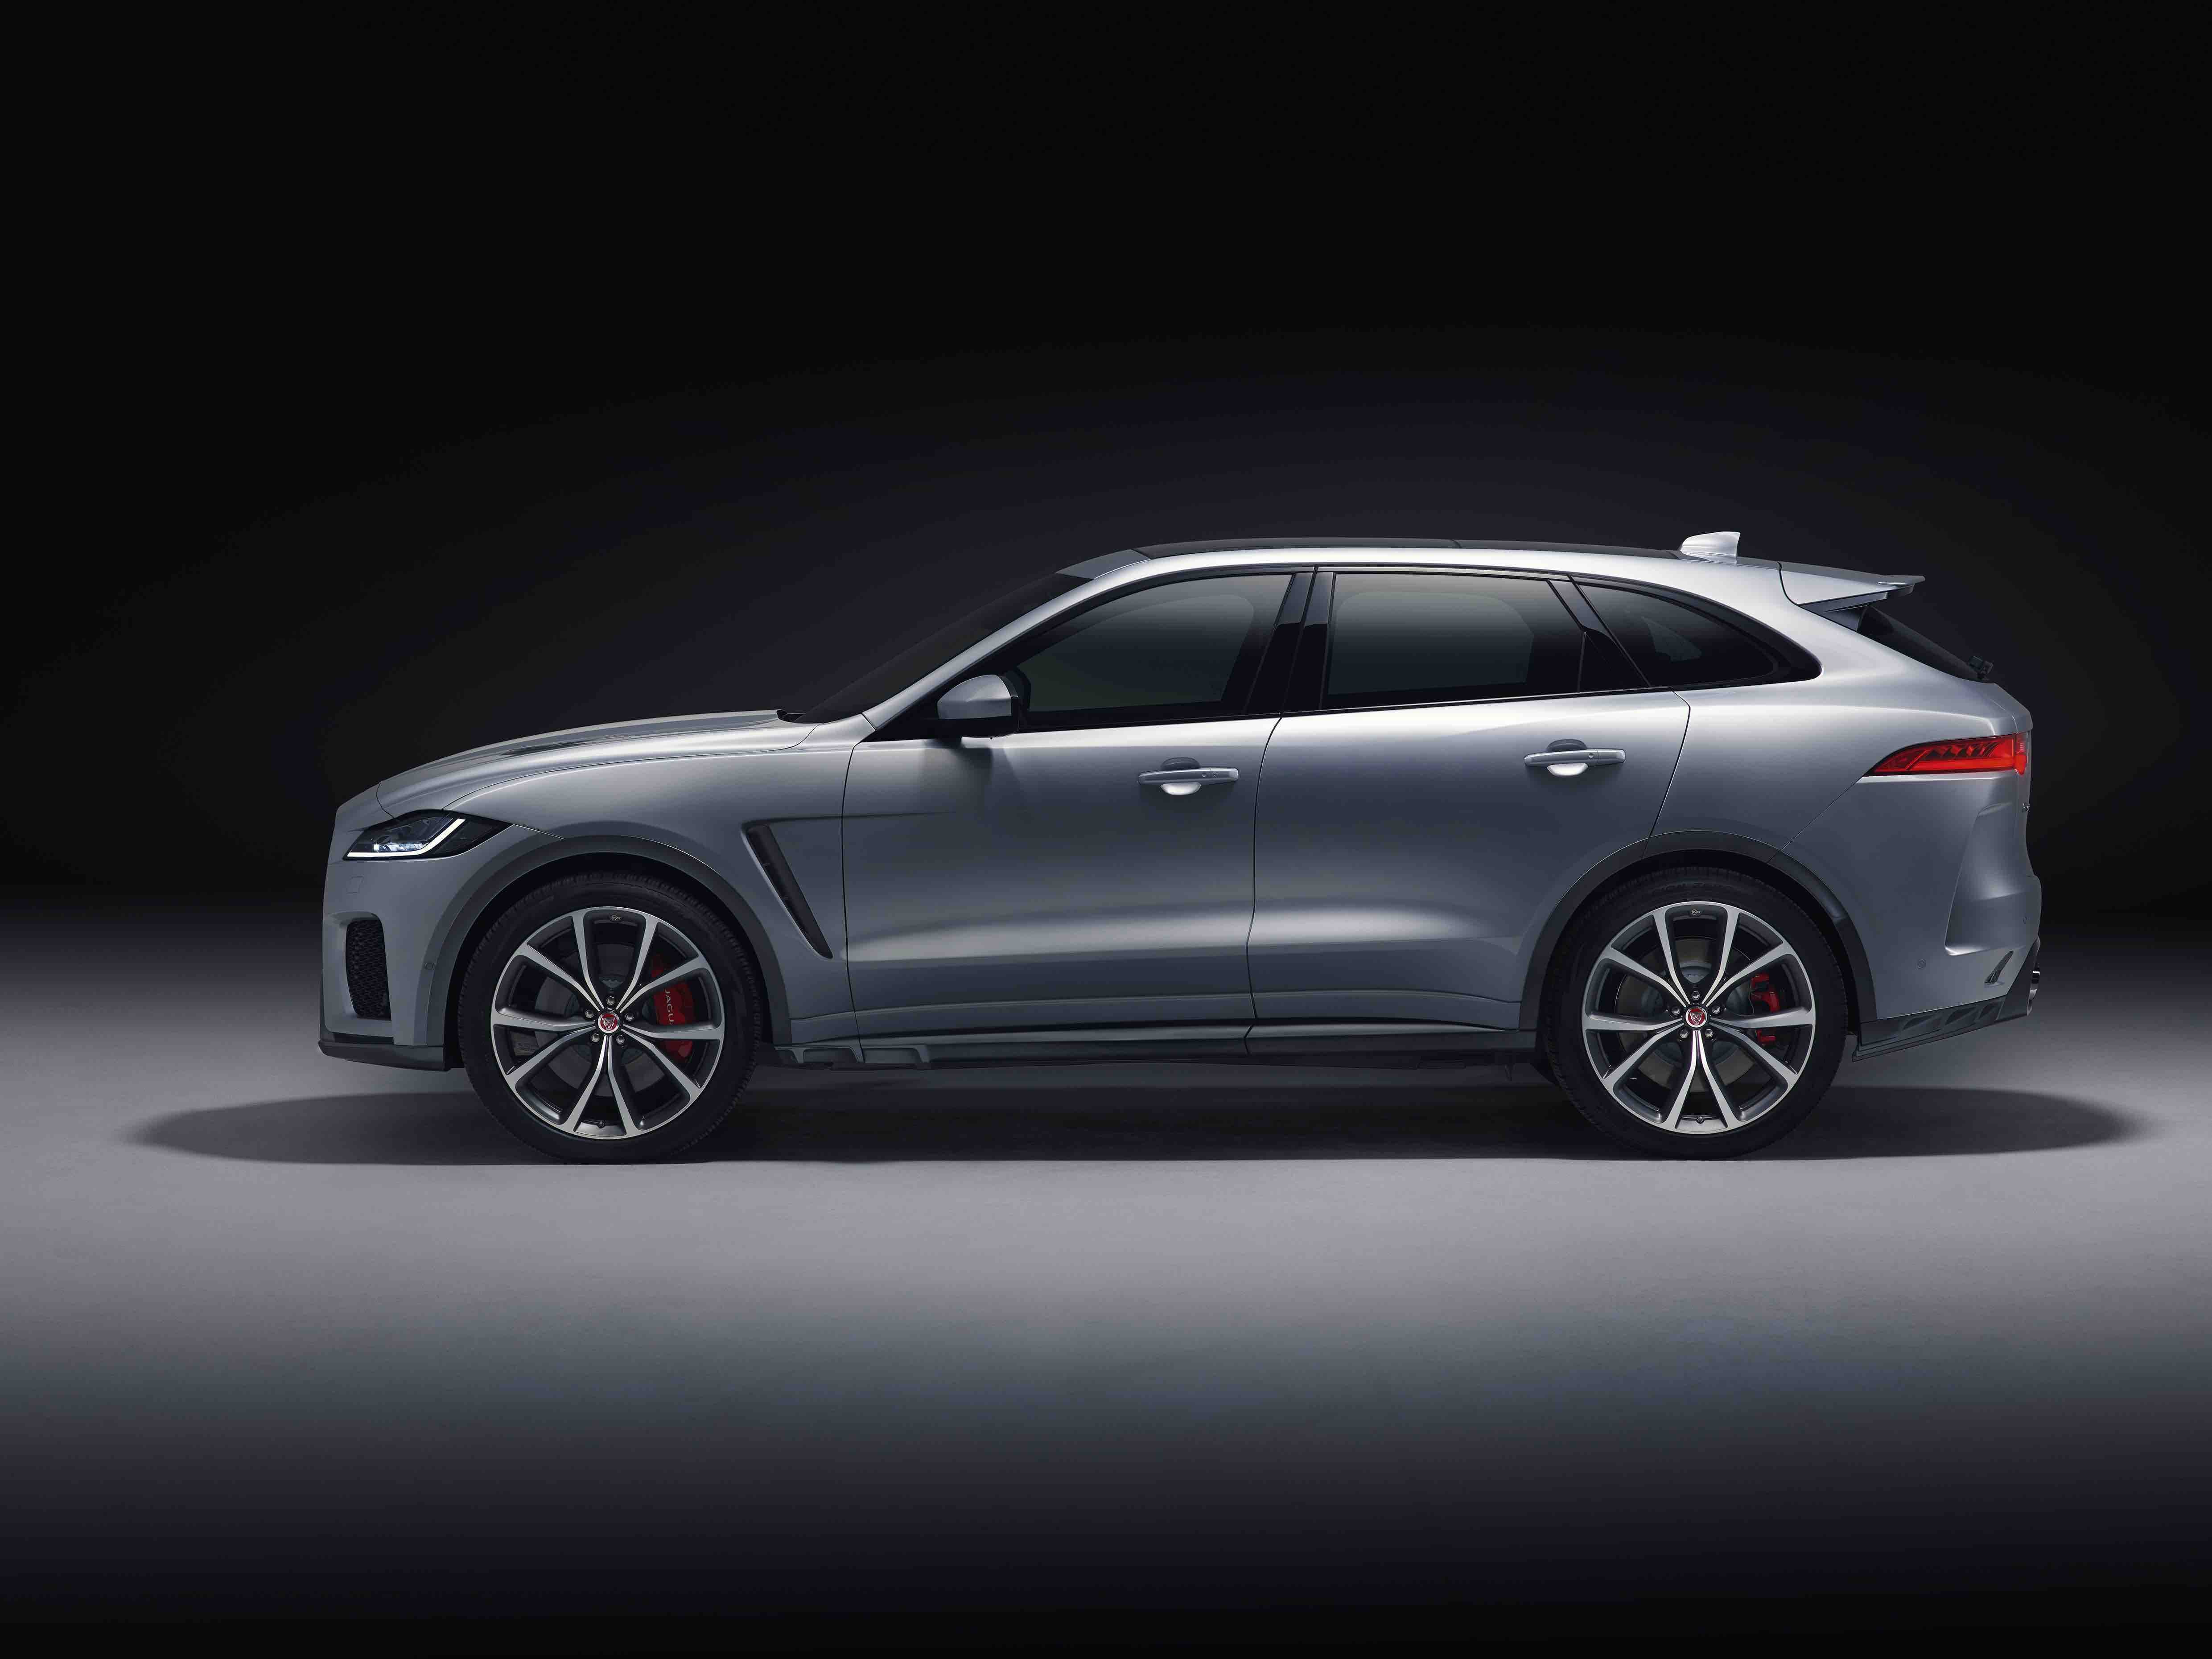 45 All New 2020 Jaguar F Pace Svr Release with 2020 Jaguar F Pace Svr